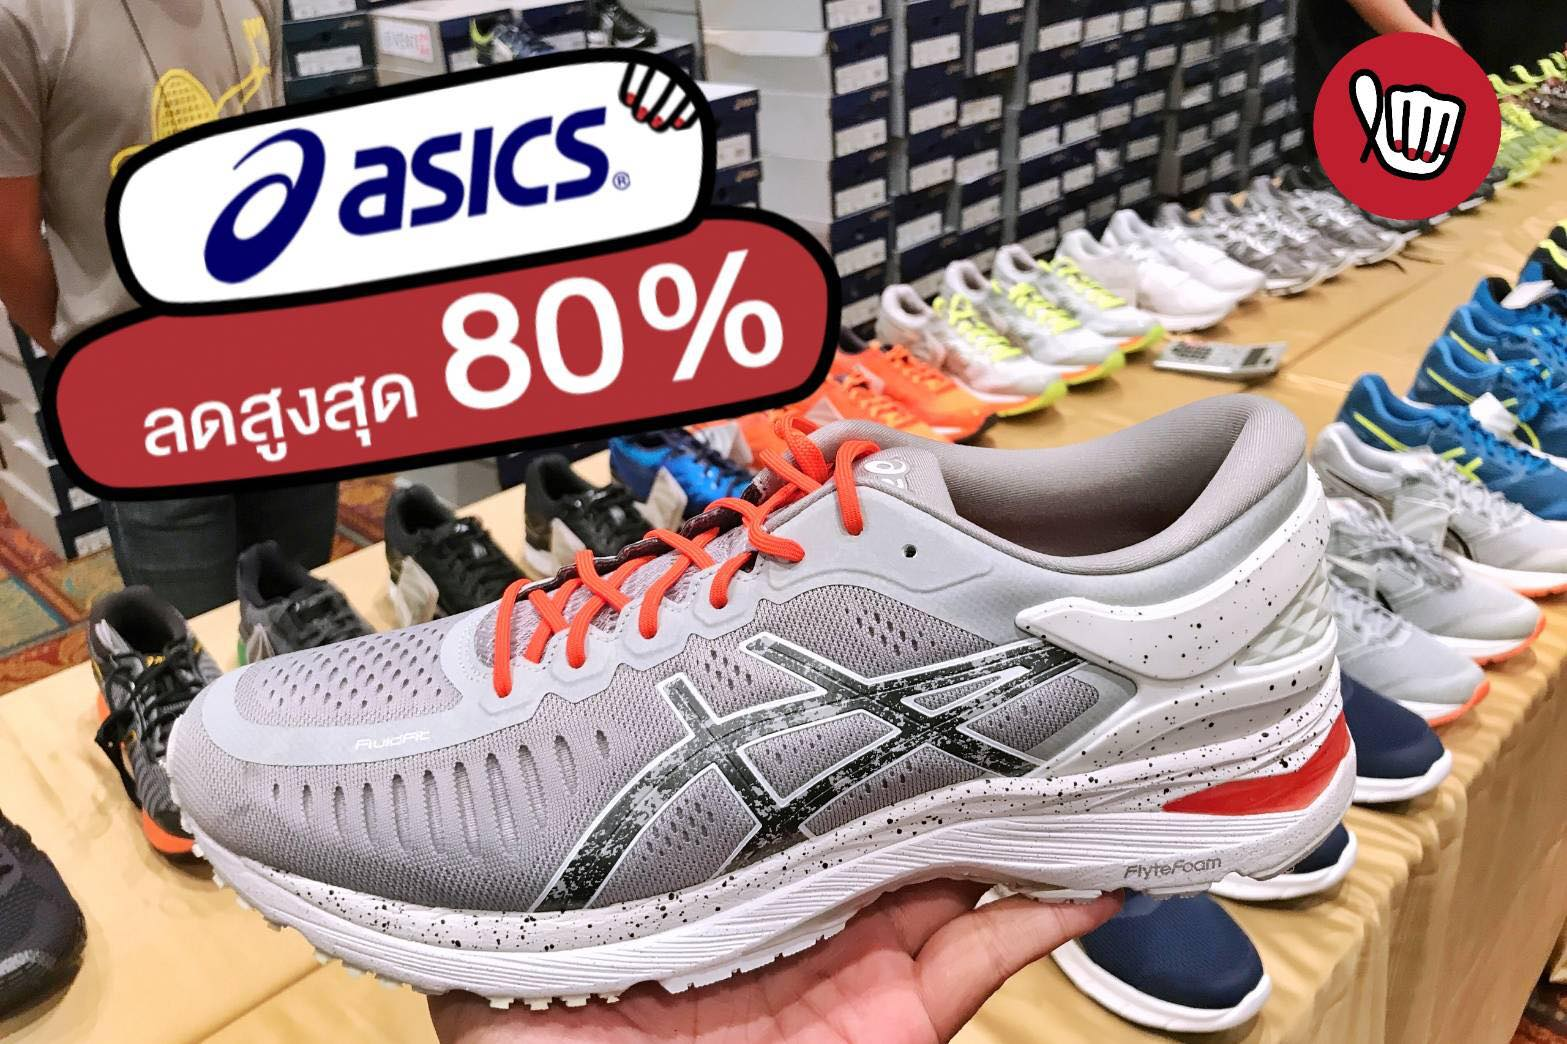 Asics Warehouse Sale สูงสุด 80%